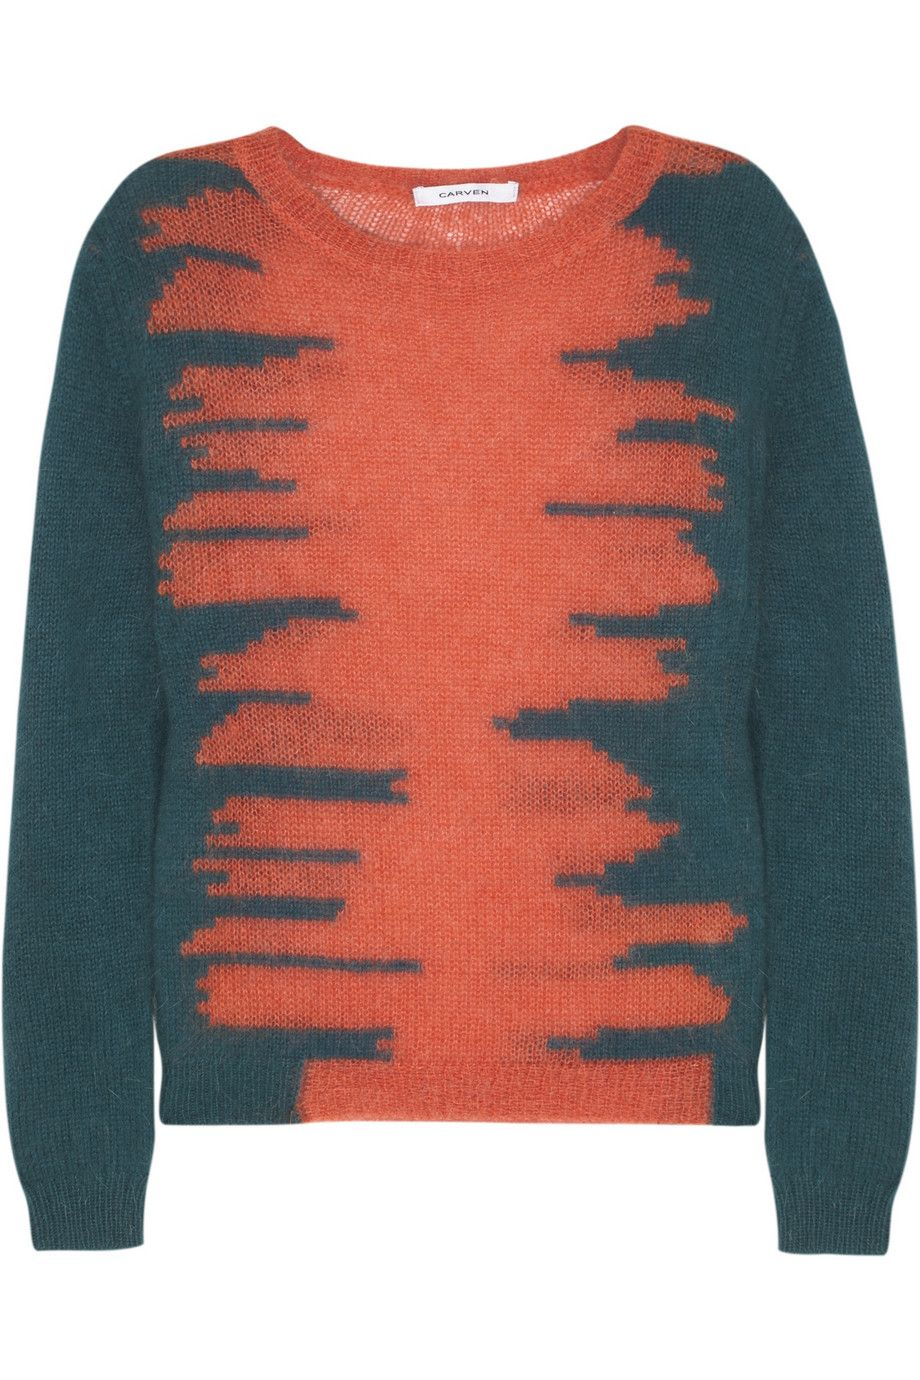 Carven | Tiger-intarsia knitted sweater | NET-A-PORTER.COM